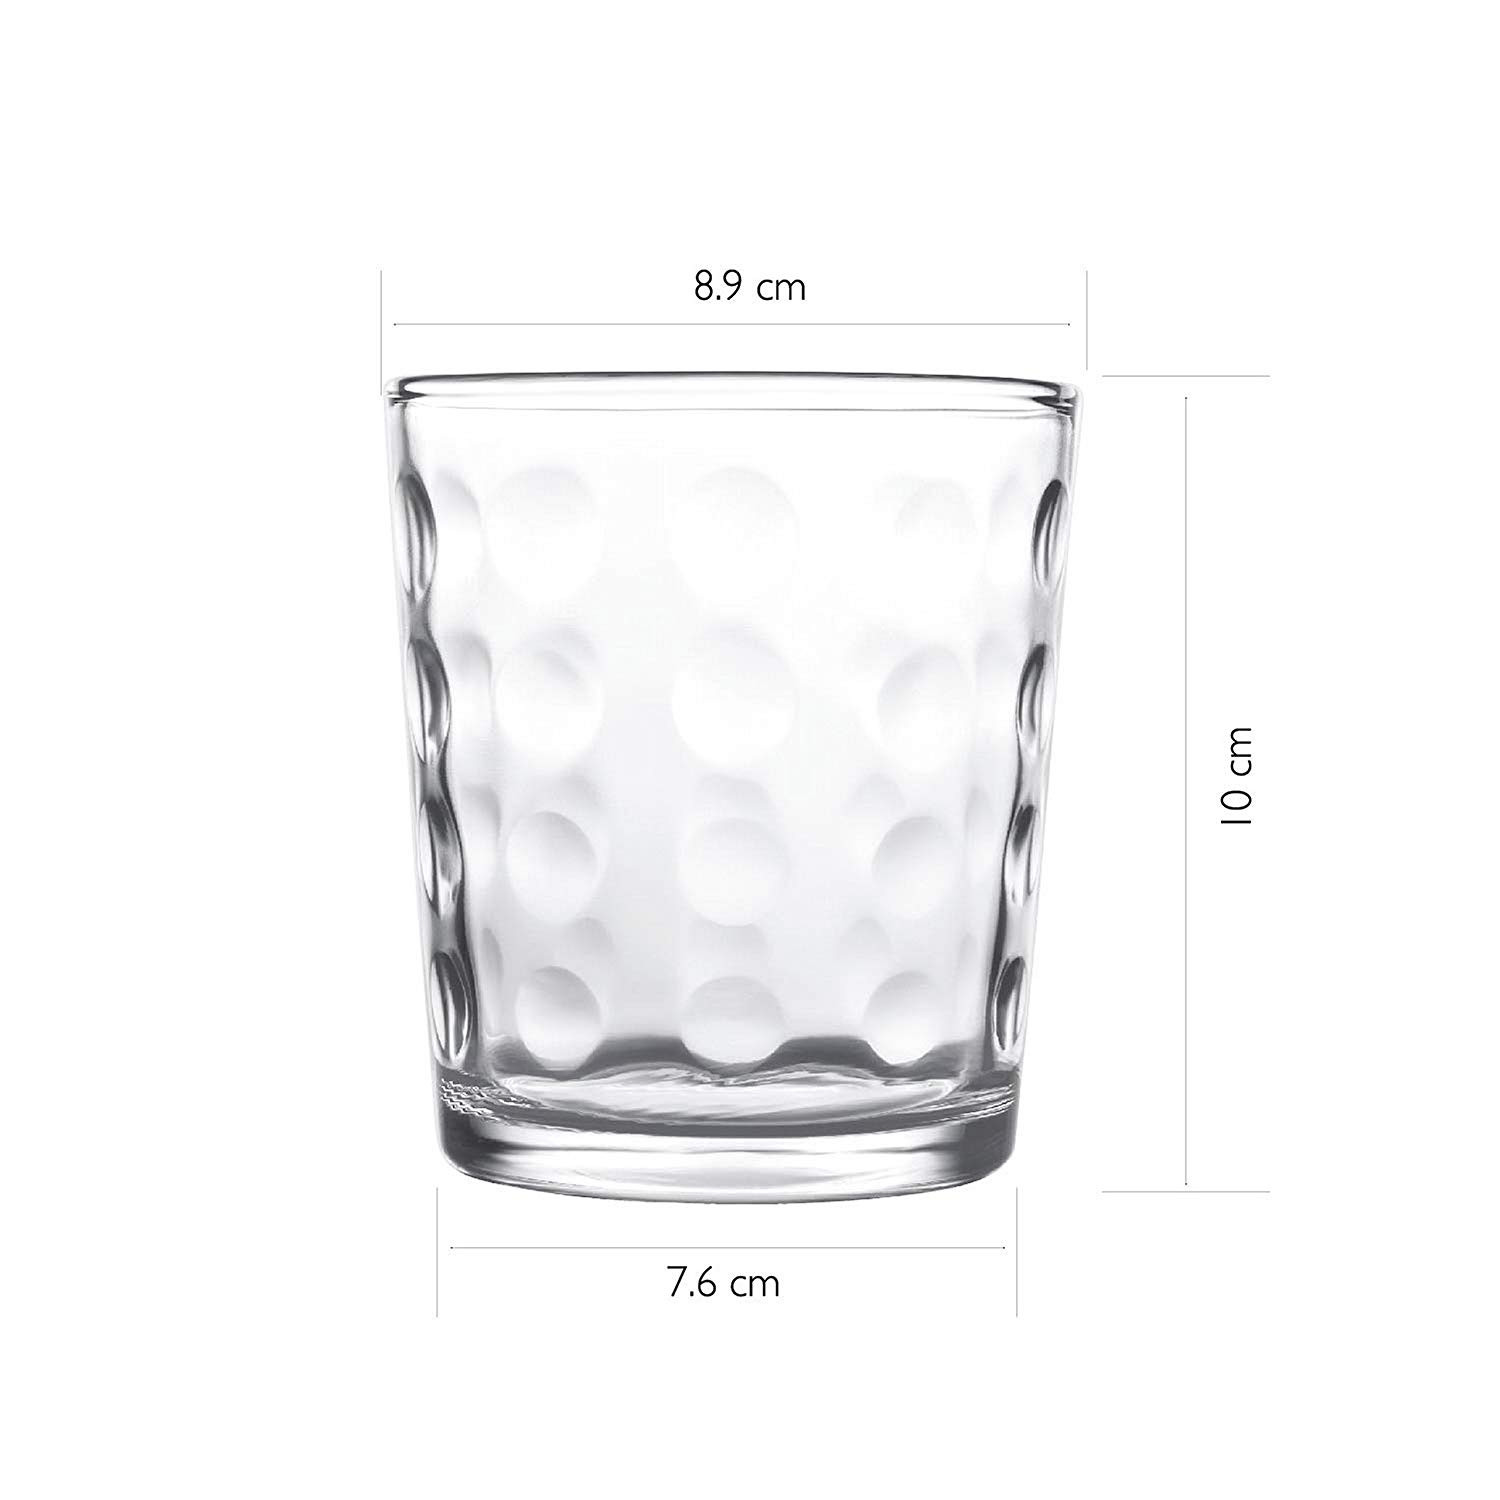 6 x 6 glass cube vases of buy cello prego terra tumbler set 385ml 10cm set of 6 clear intended for buy cello prego terra tumbler set 385ml 10cm set of 6 clear online at low prices in india amazon in